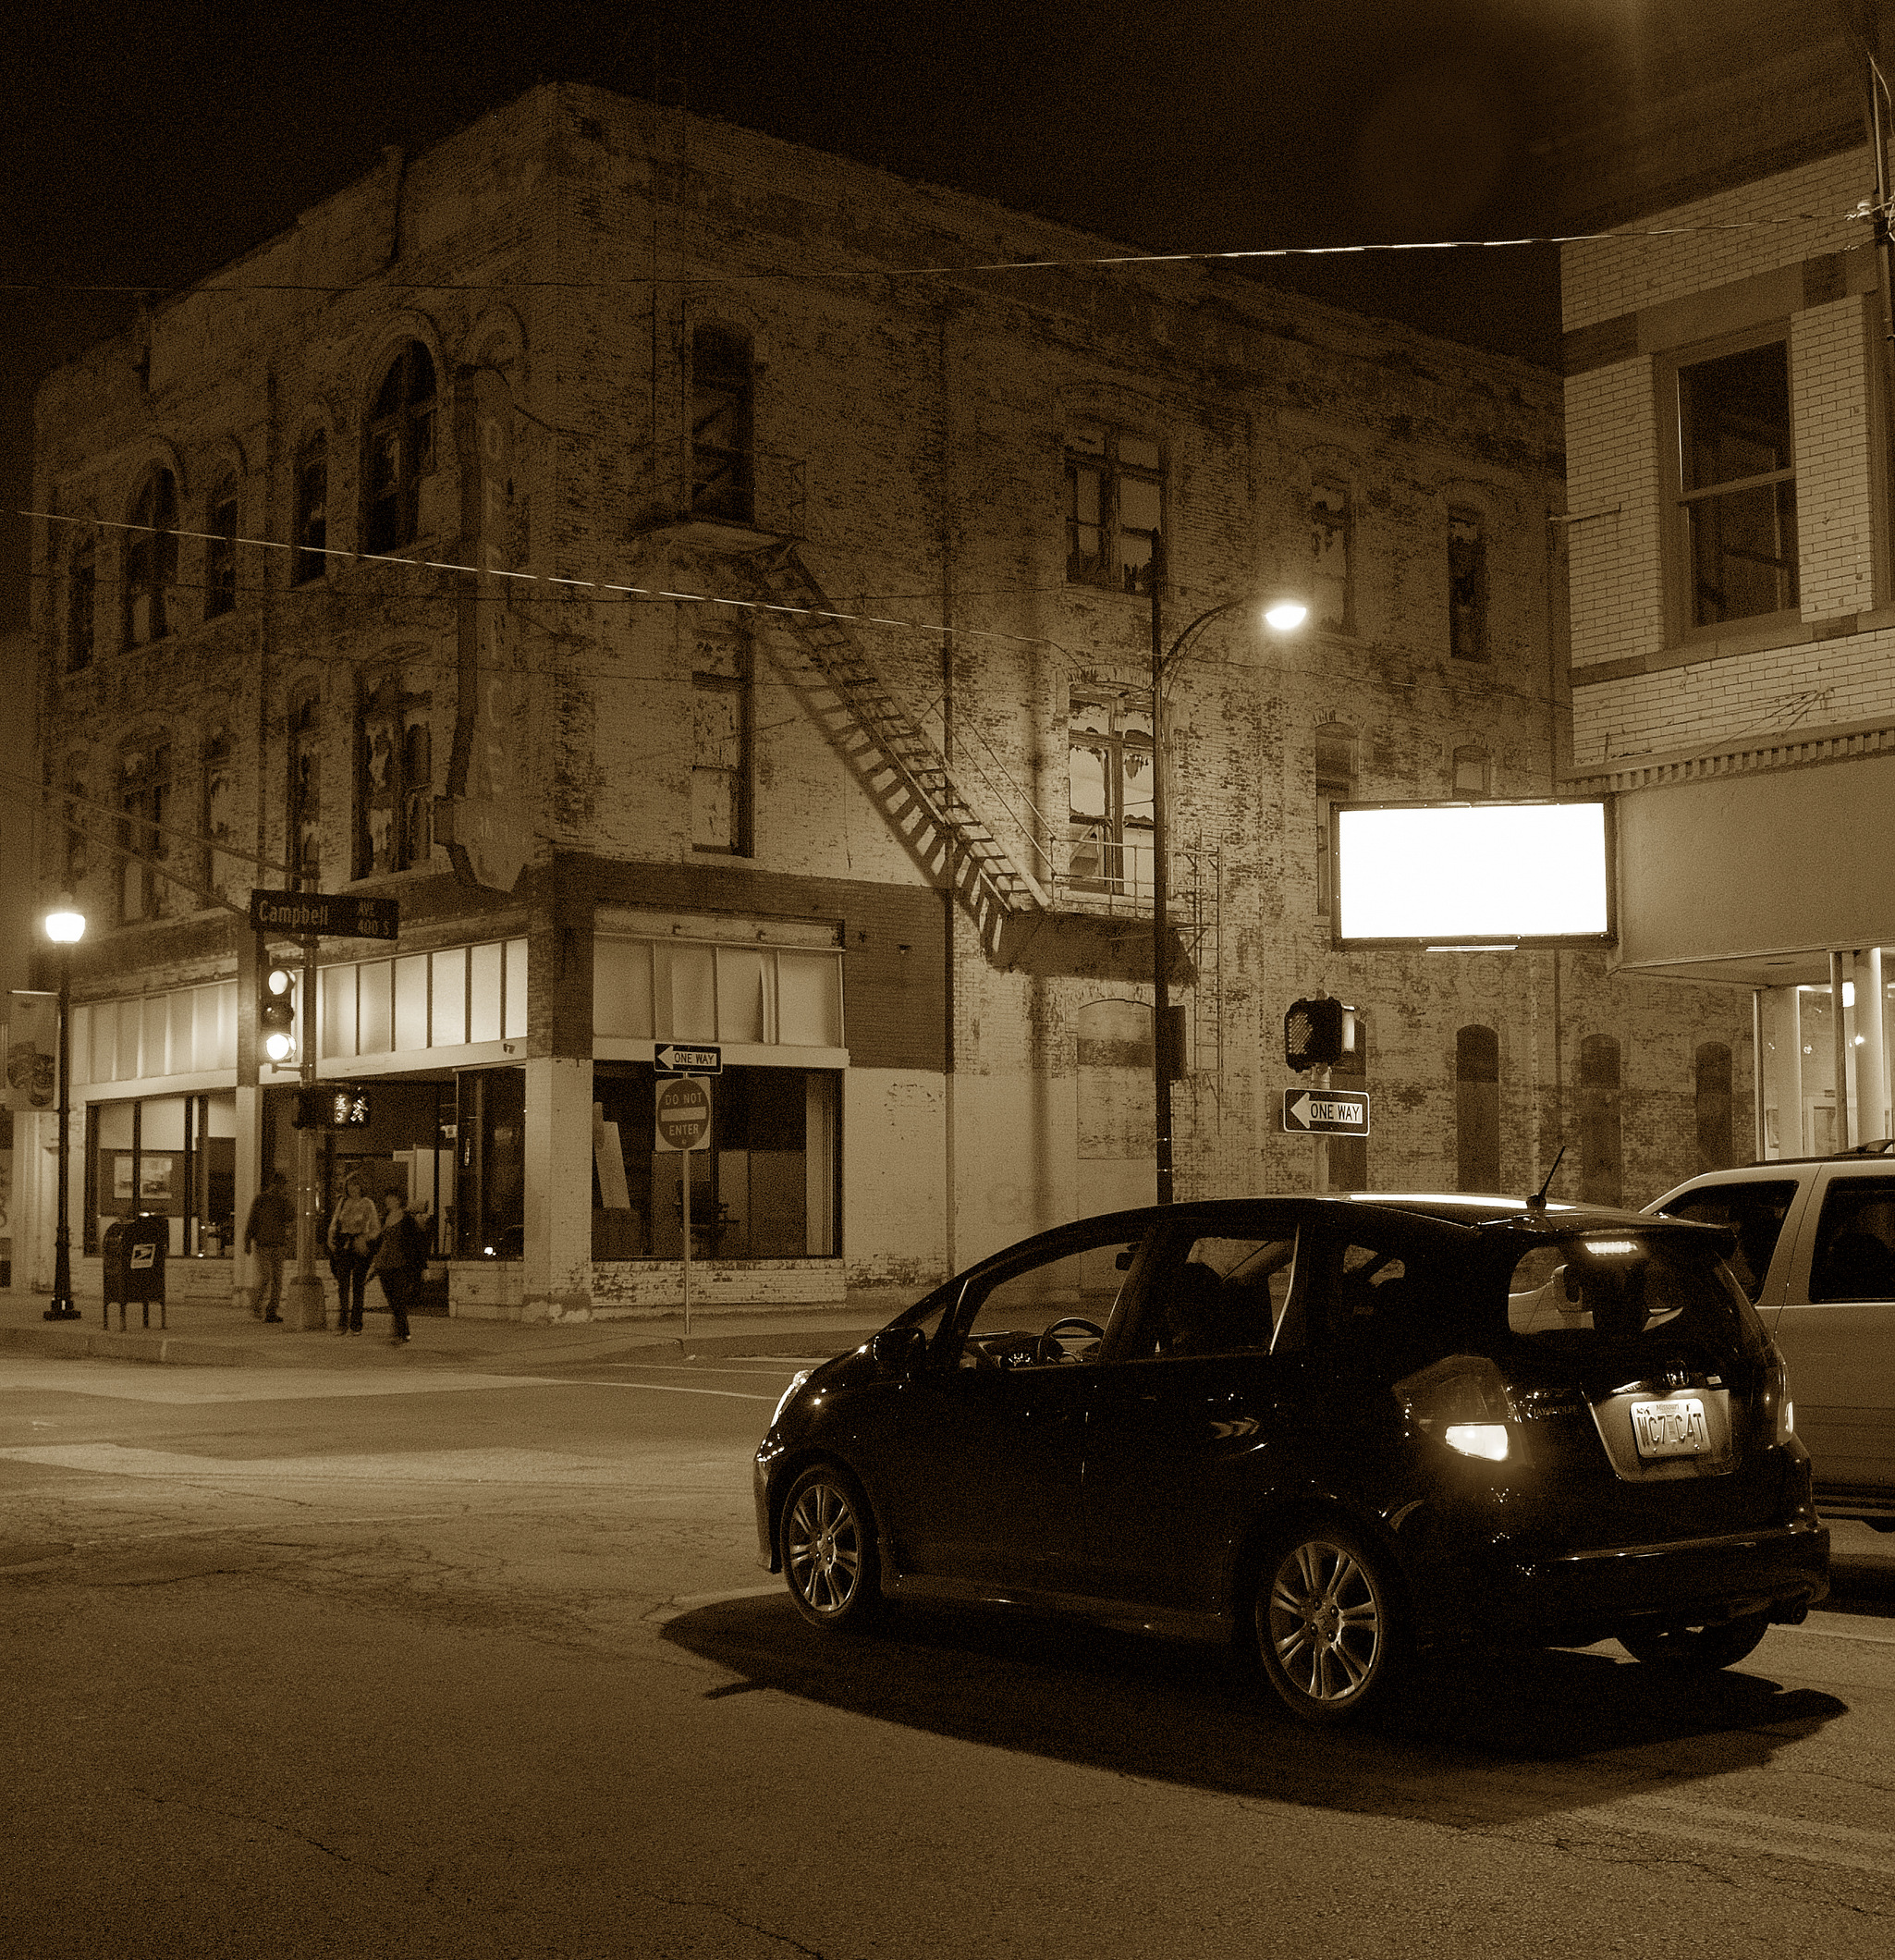 The junction of South Campbell Avenue and West Walnut Street, Springfield Missouri at night